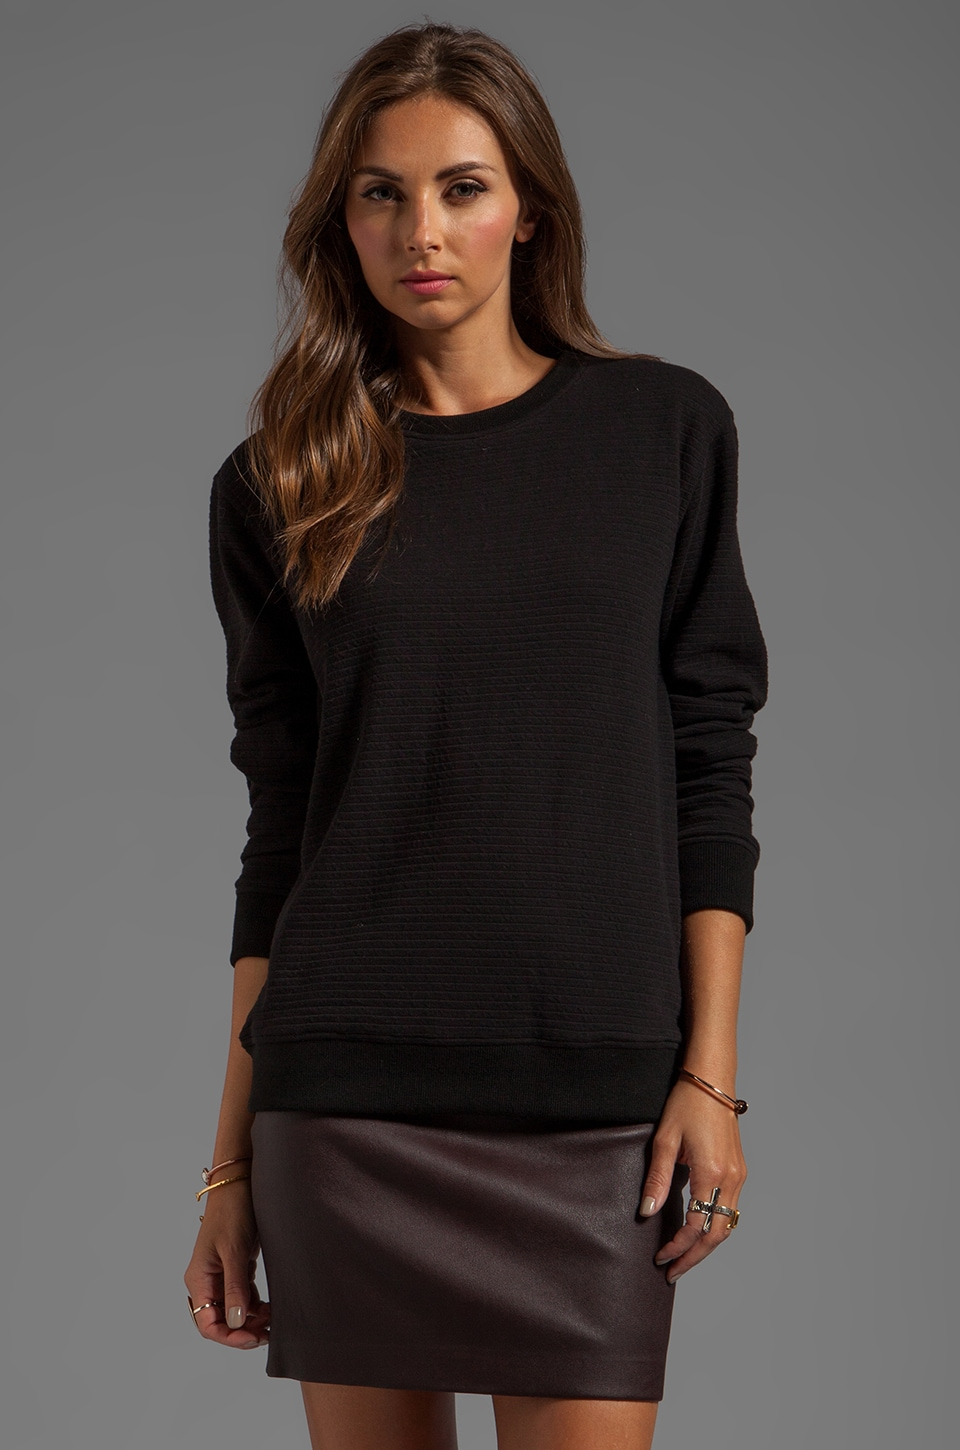 T by Alexander Wang Ottoman Double Knit Sweatshirt in Black